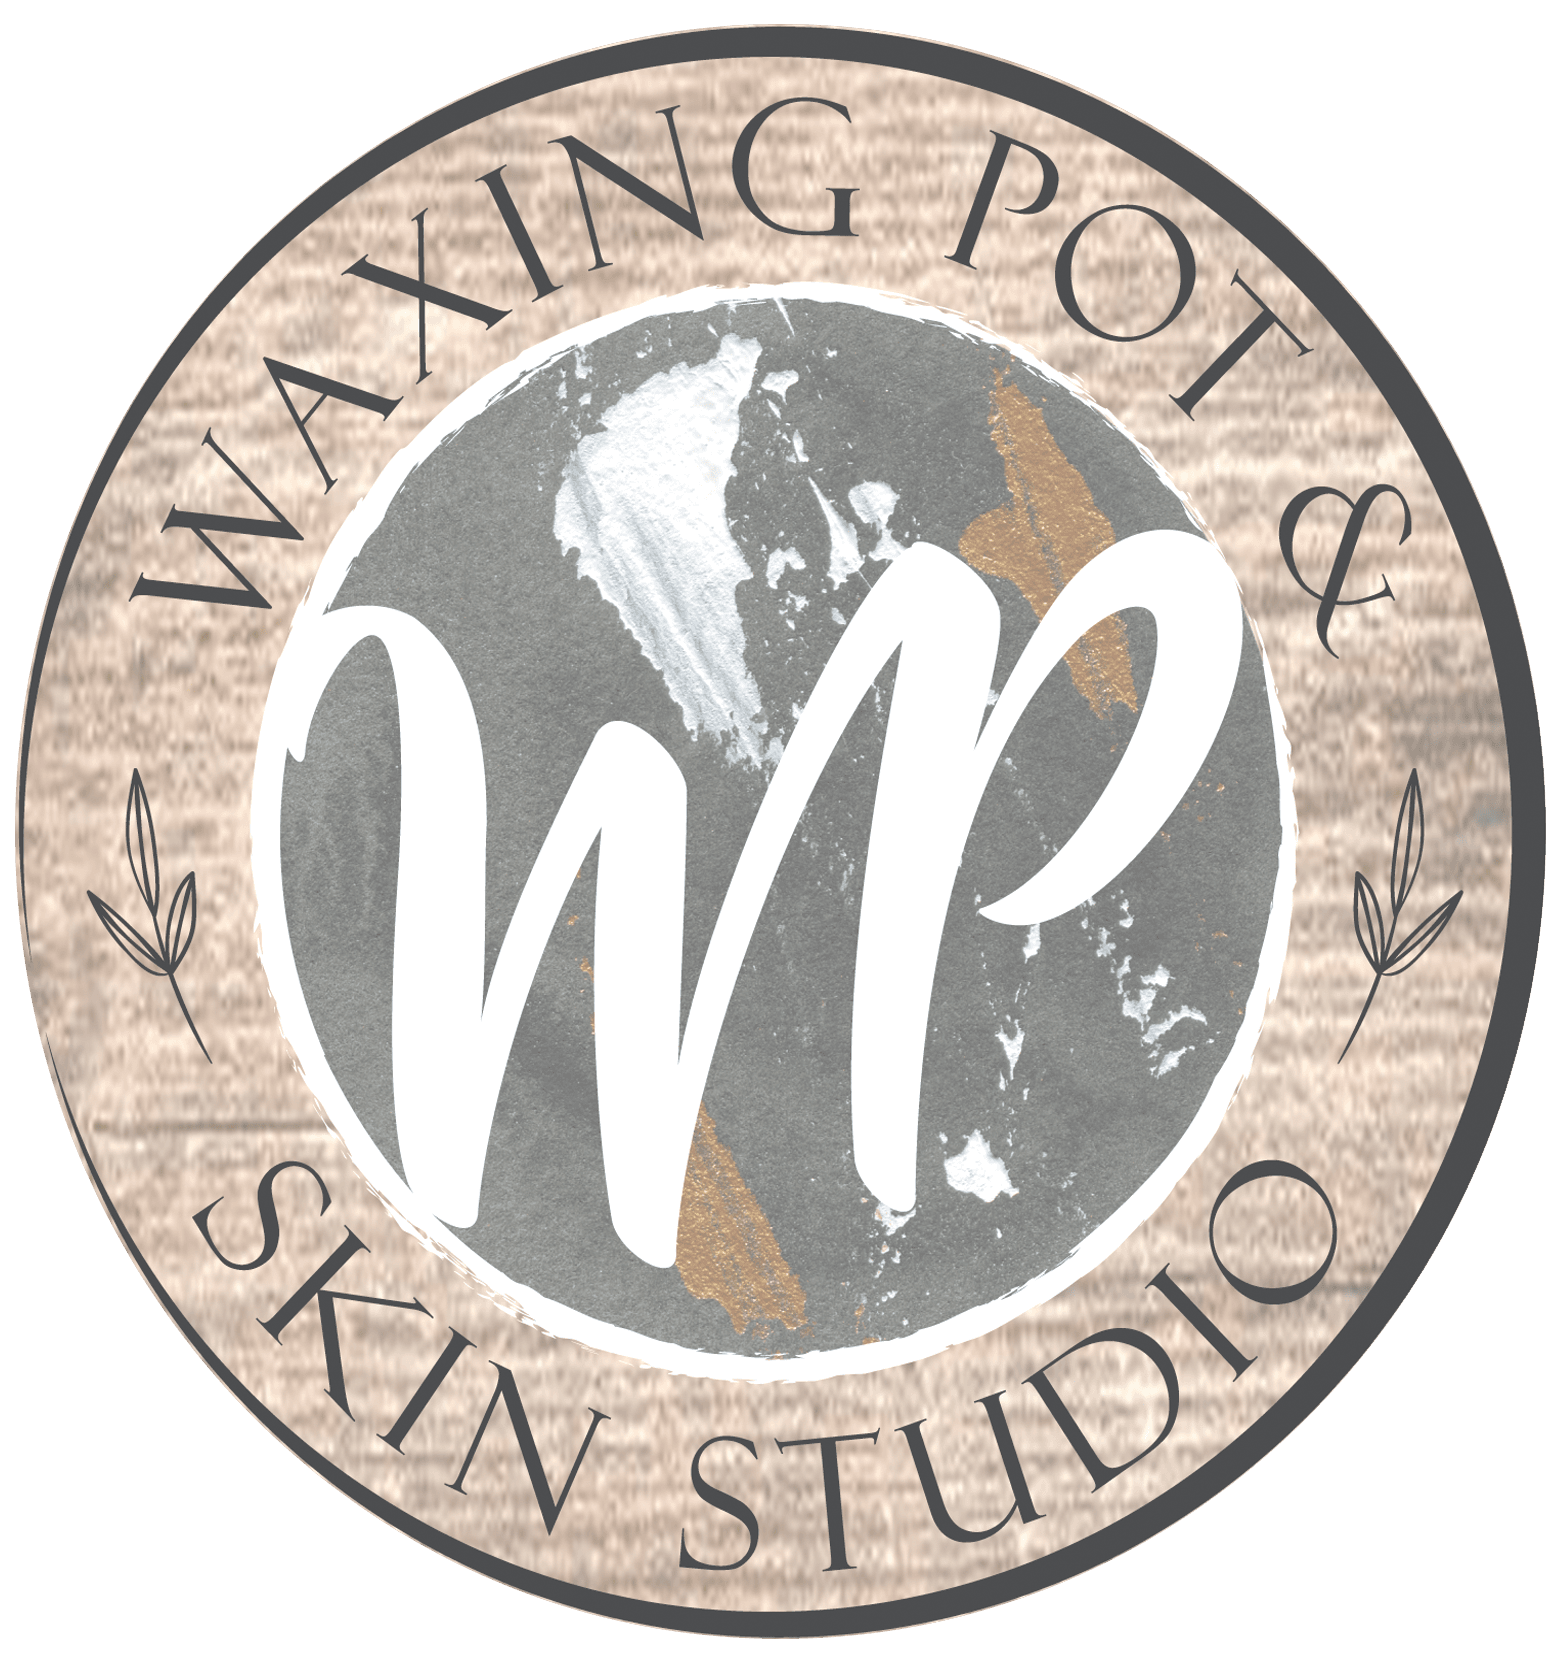 The Waxing Pot and Skin Studio